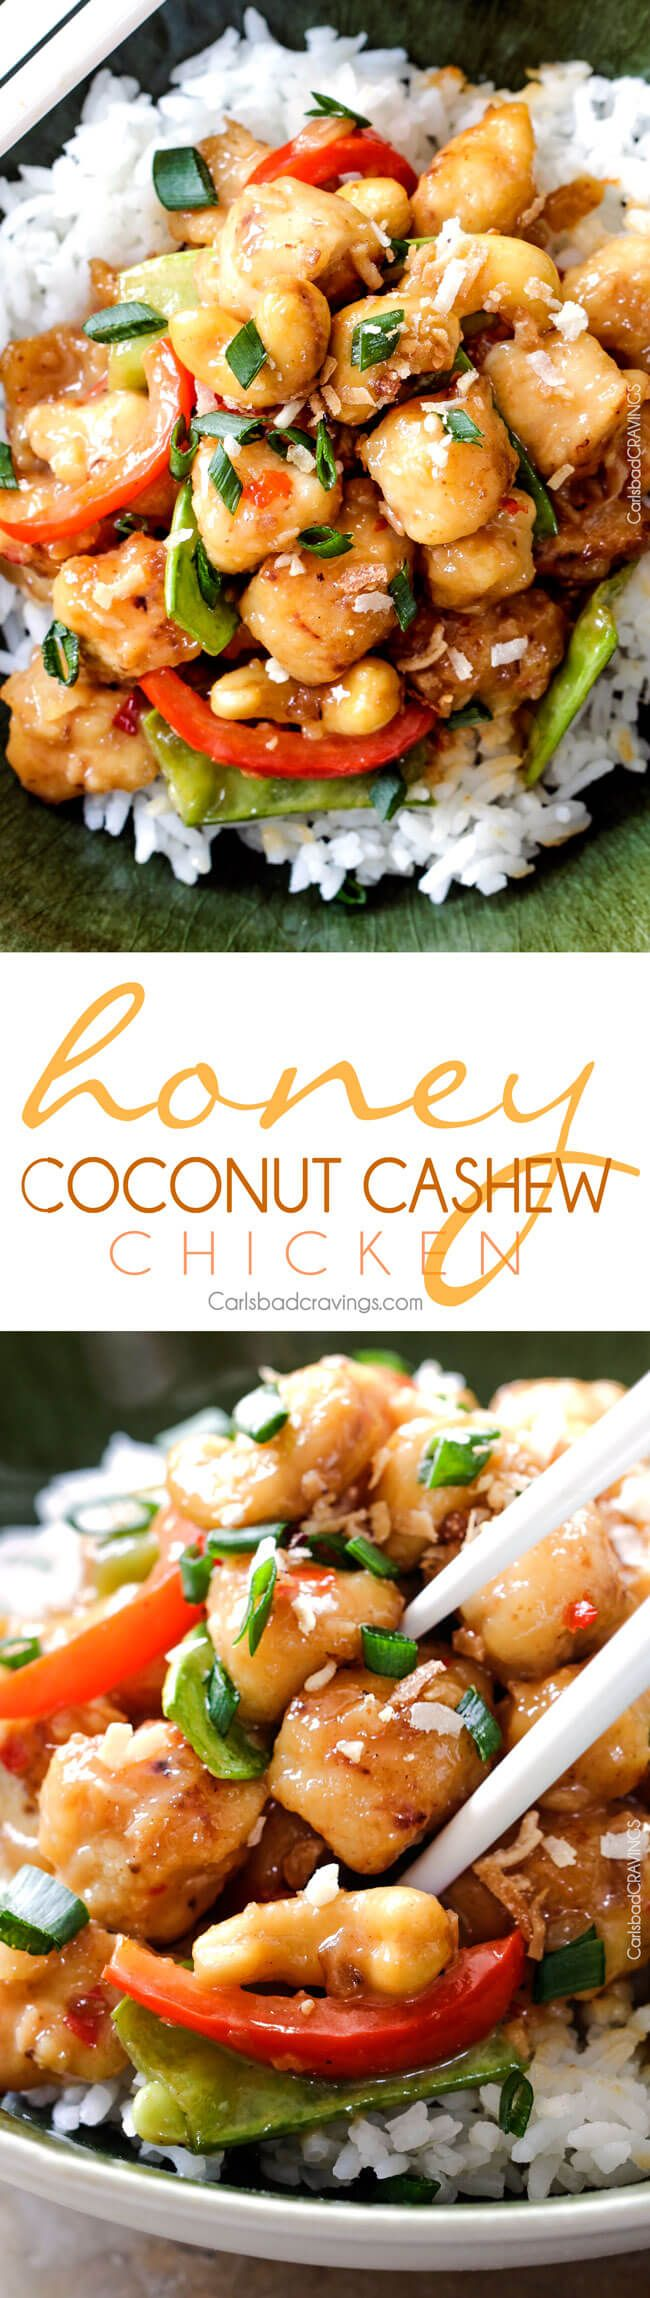 35 MINUTE  Honey Coconut Cashew Chicken Stir Fry - this is my family's favorite…